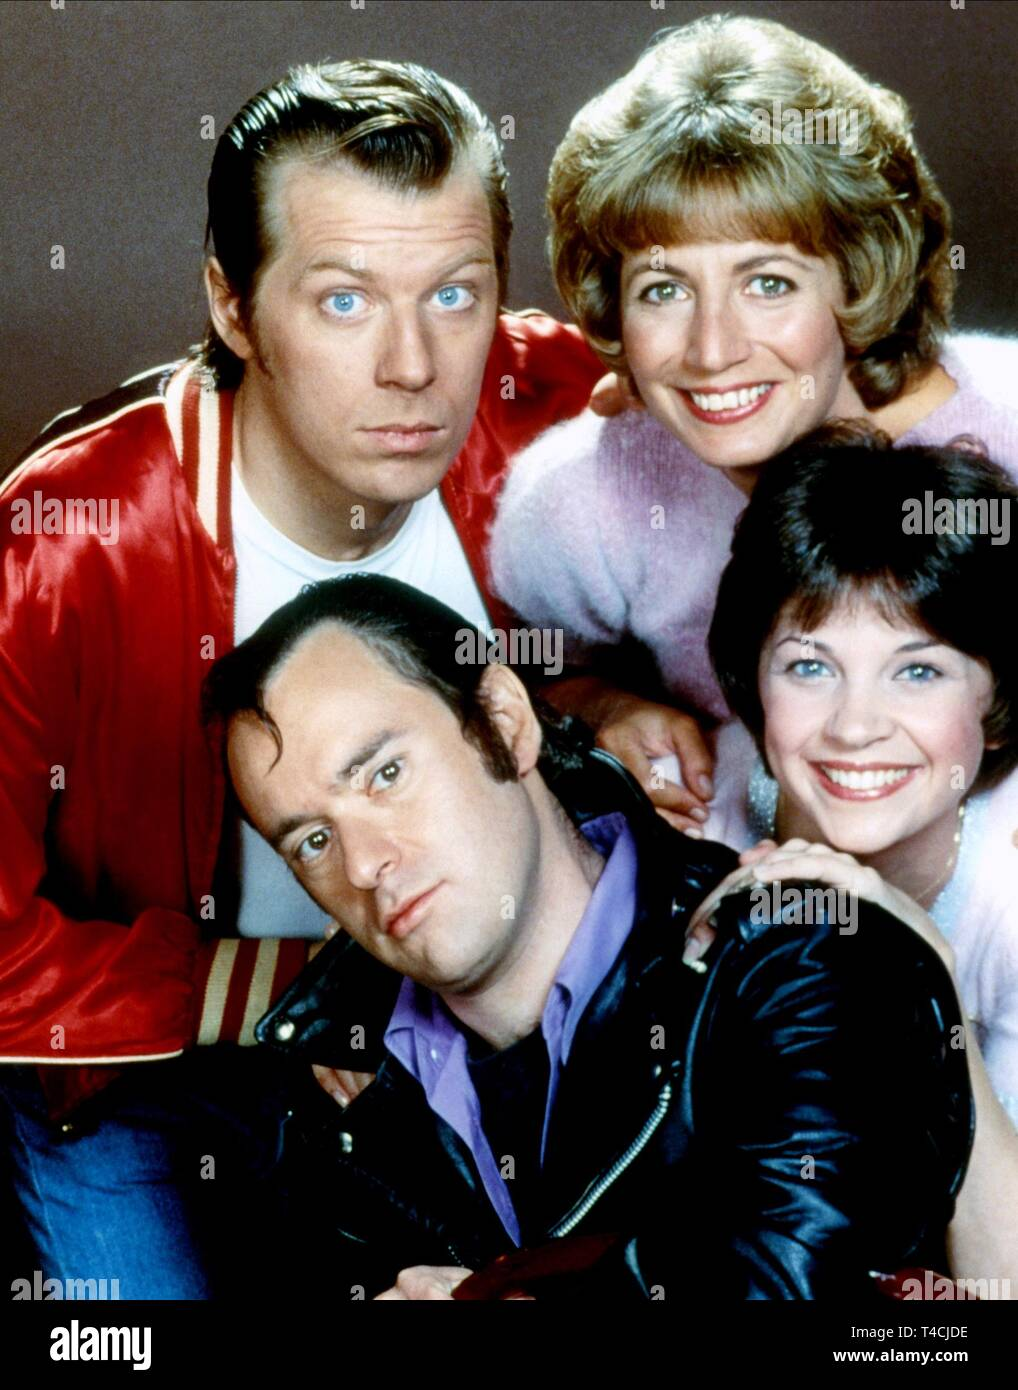 LANDER,MCKEAN,MARSHALL,WILLIAMS, LAVERNE and SHIRLEY, 1976 - Stock Image